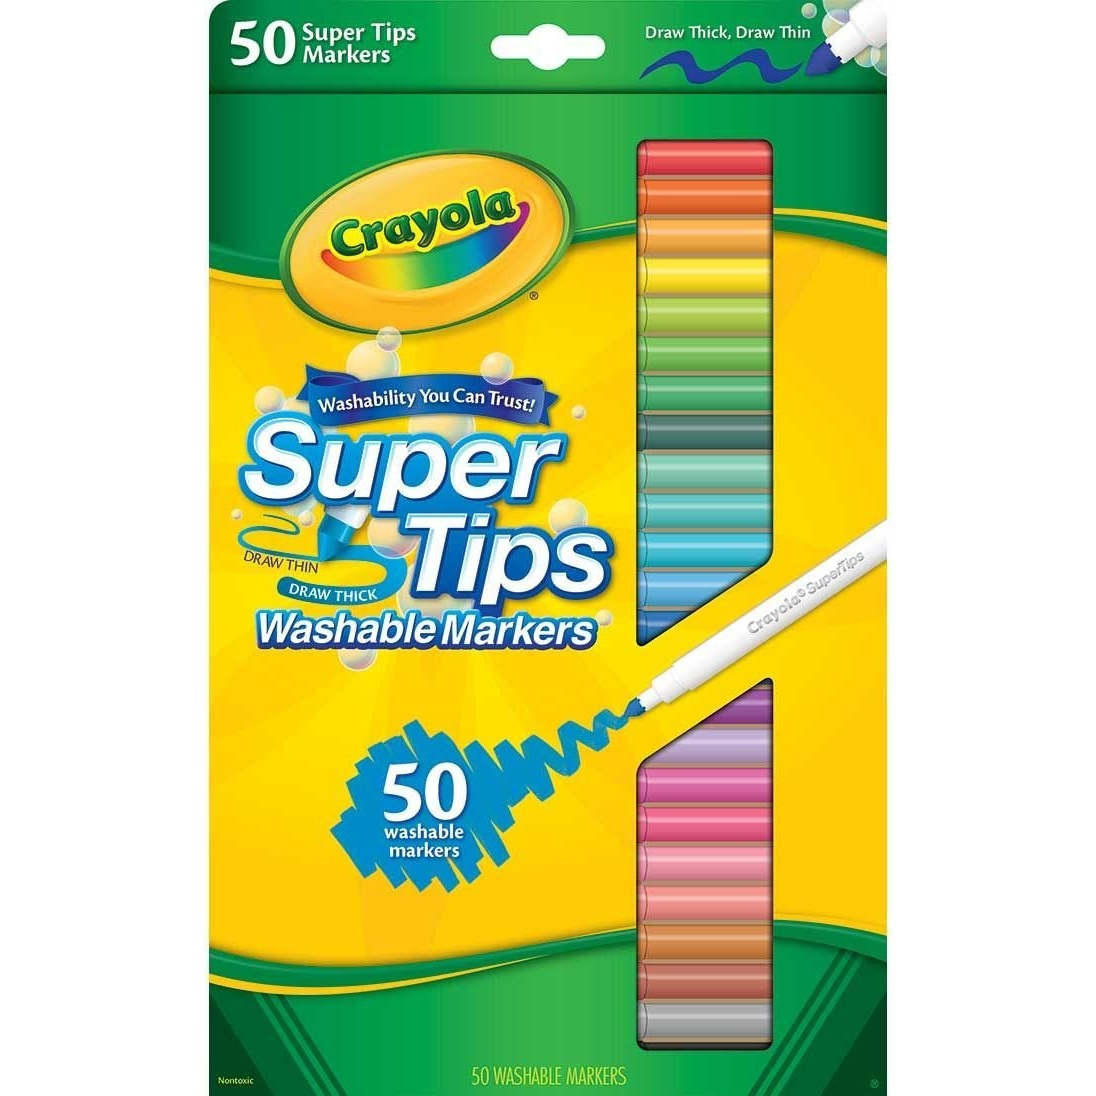 CRAYOLA SUPERTIPS - I love these because they're cheap, they come in TONS of colors, they don't bleed through (most) paper, and they have this neat thick/thin tip so you can practice your calligraphy (crayligraphy) with them.